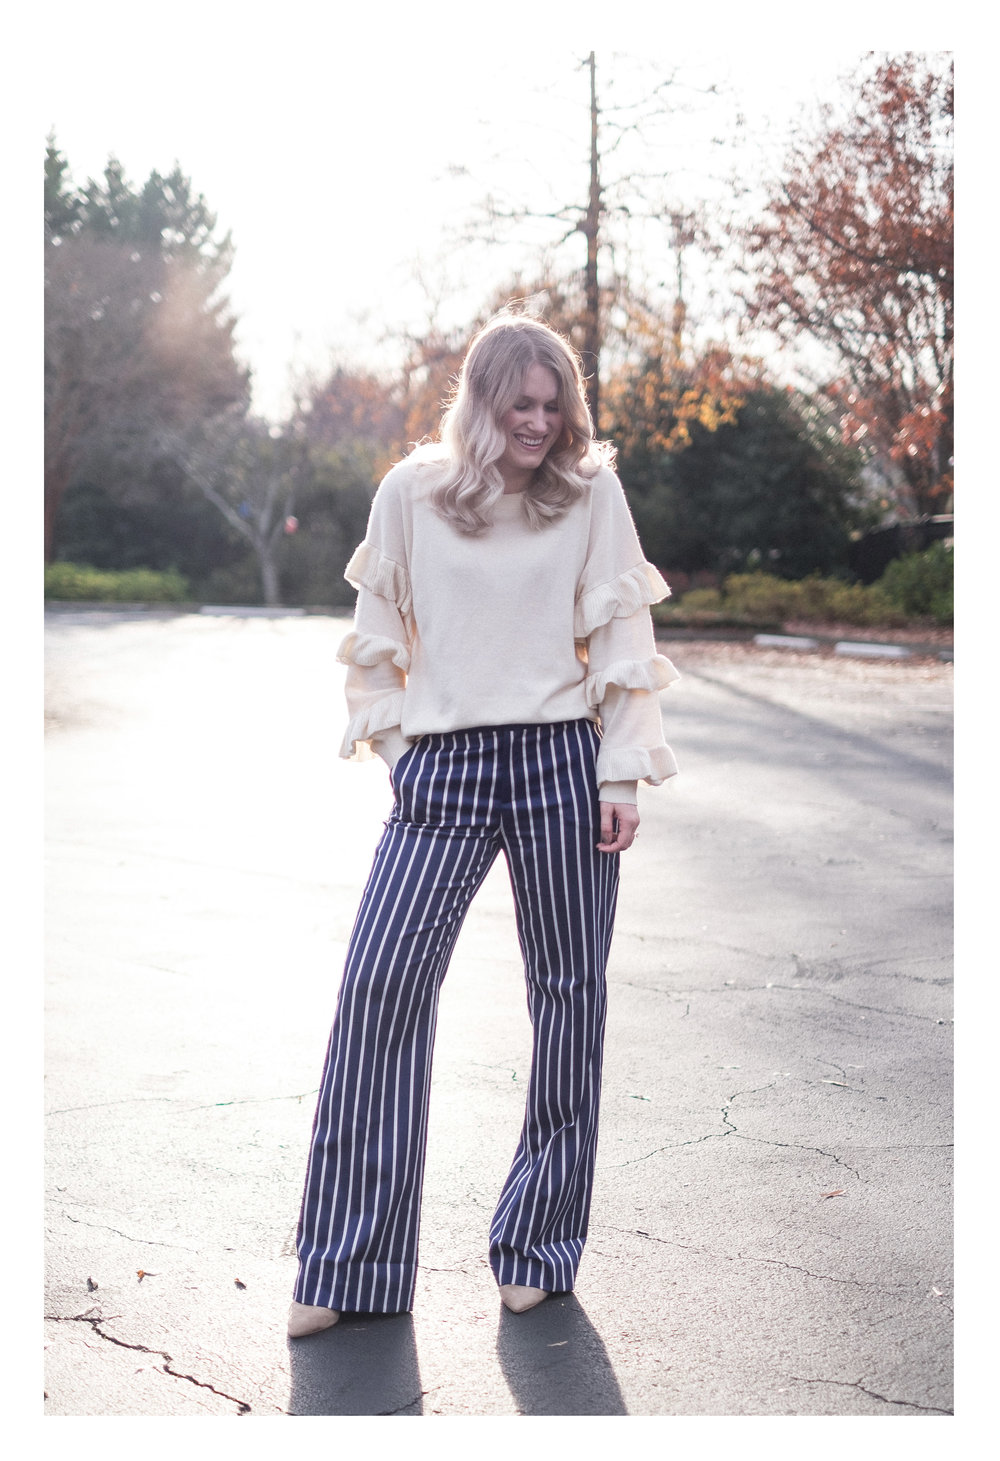 Wide striped pants 2017 Olivia Vranjes 100.jpg